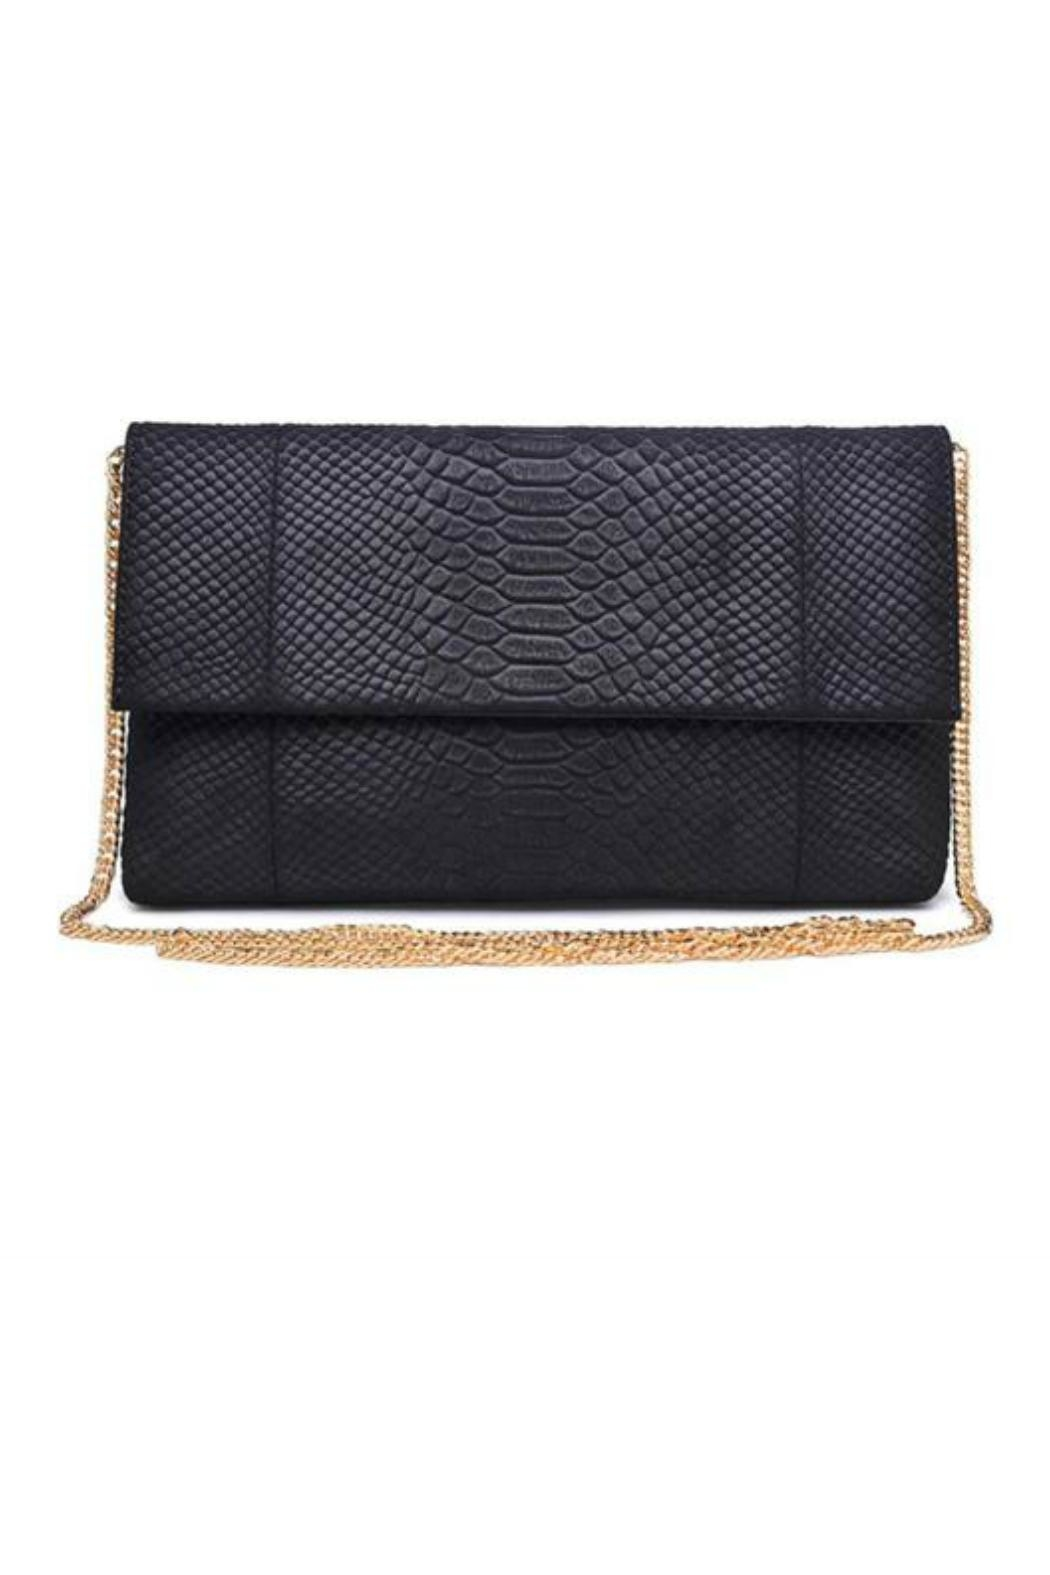 Urban Expressions Phoebe Clutch - Main Image